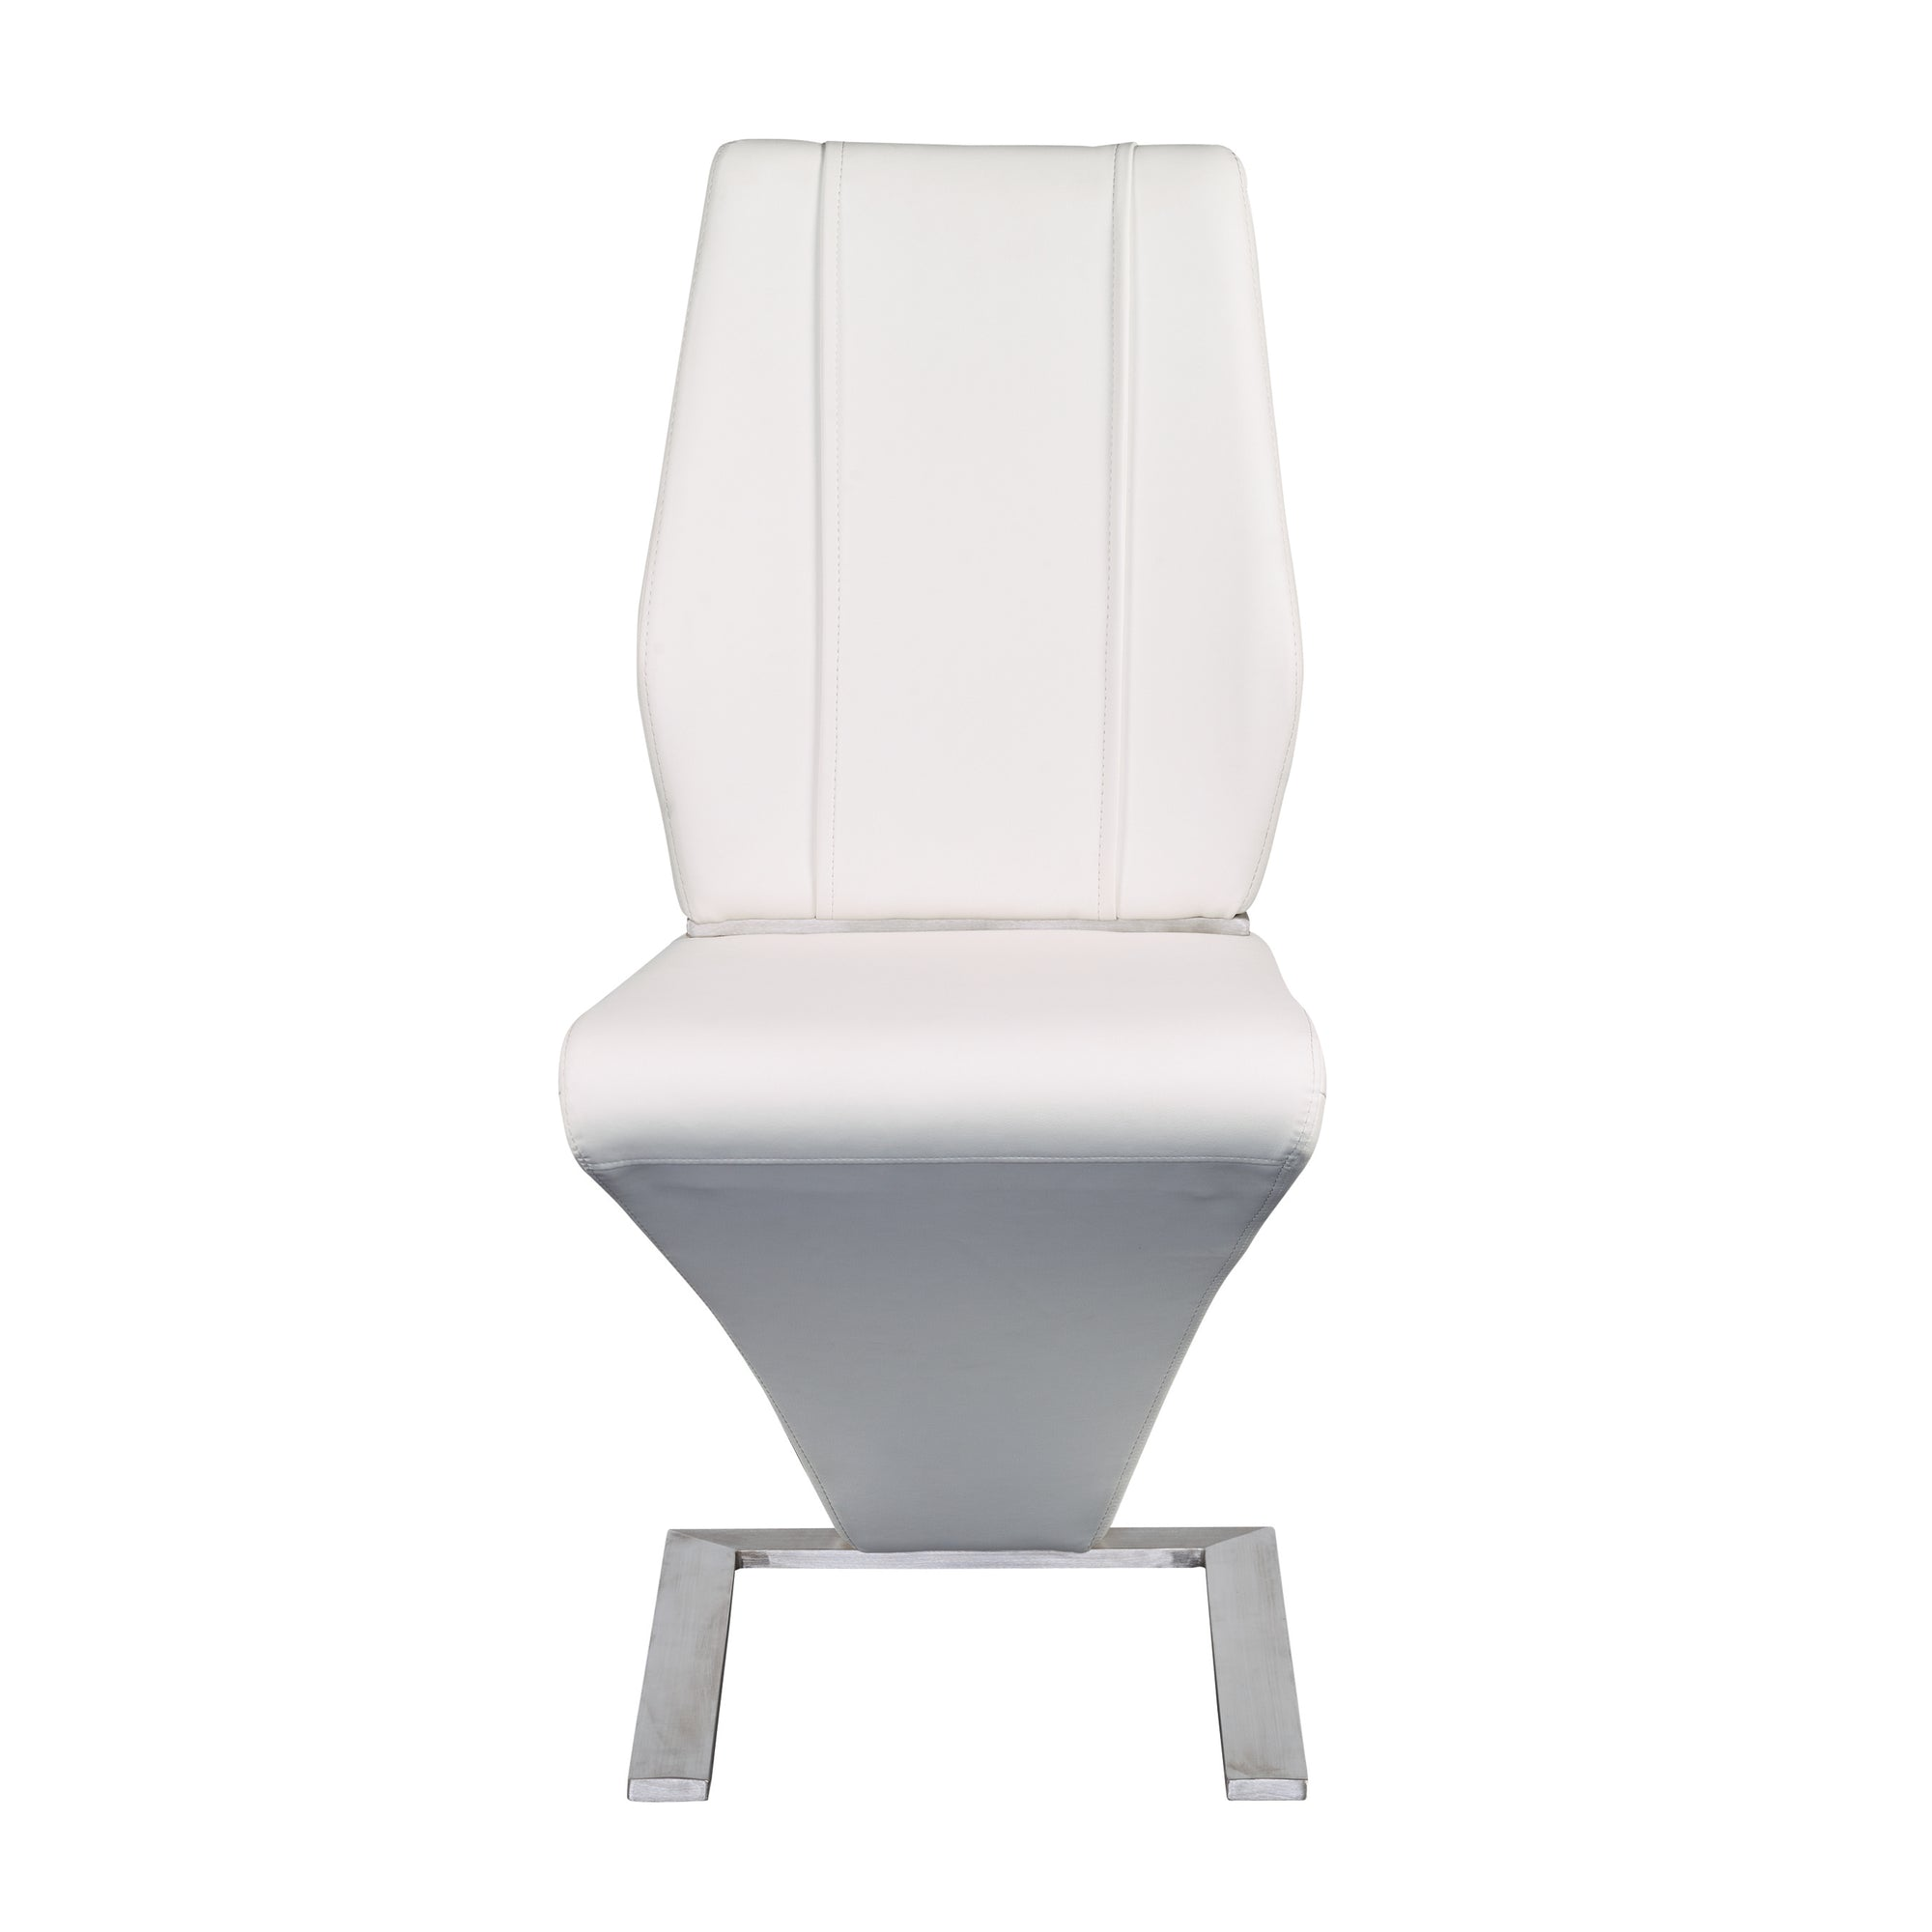 Z Shaped White Leatherette Guest Or Conference Chairs (Set Of 2)